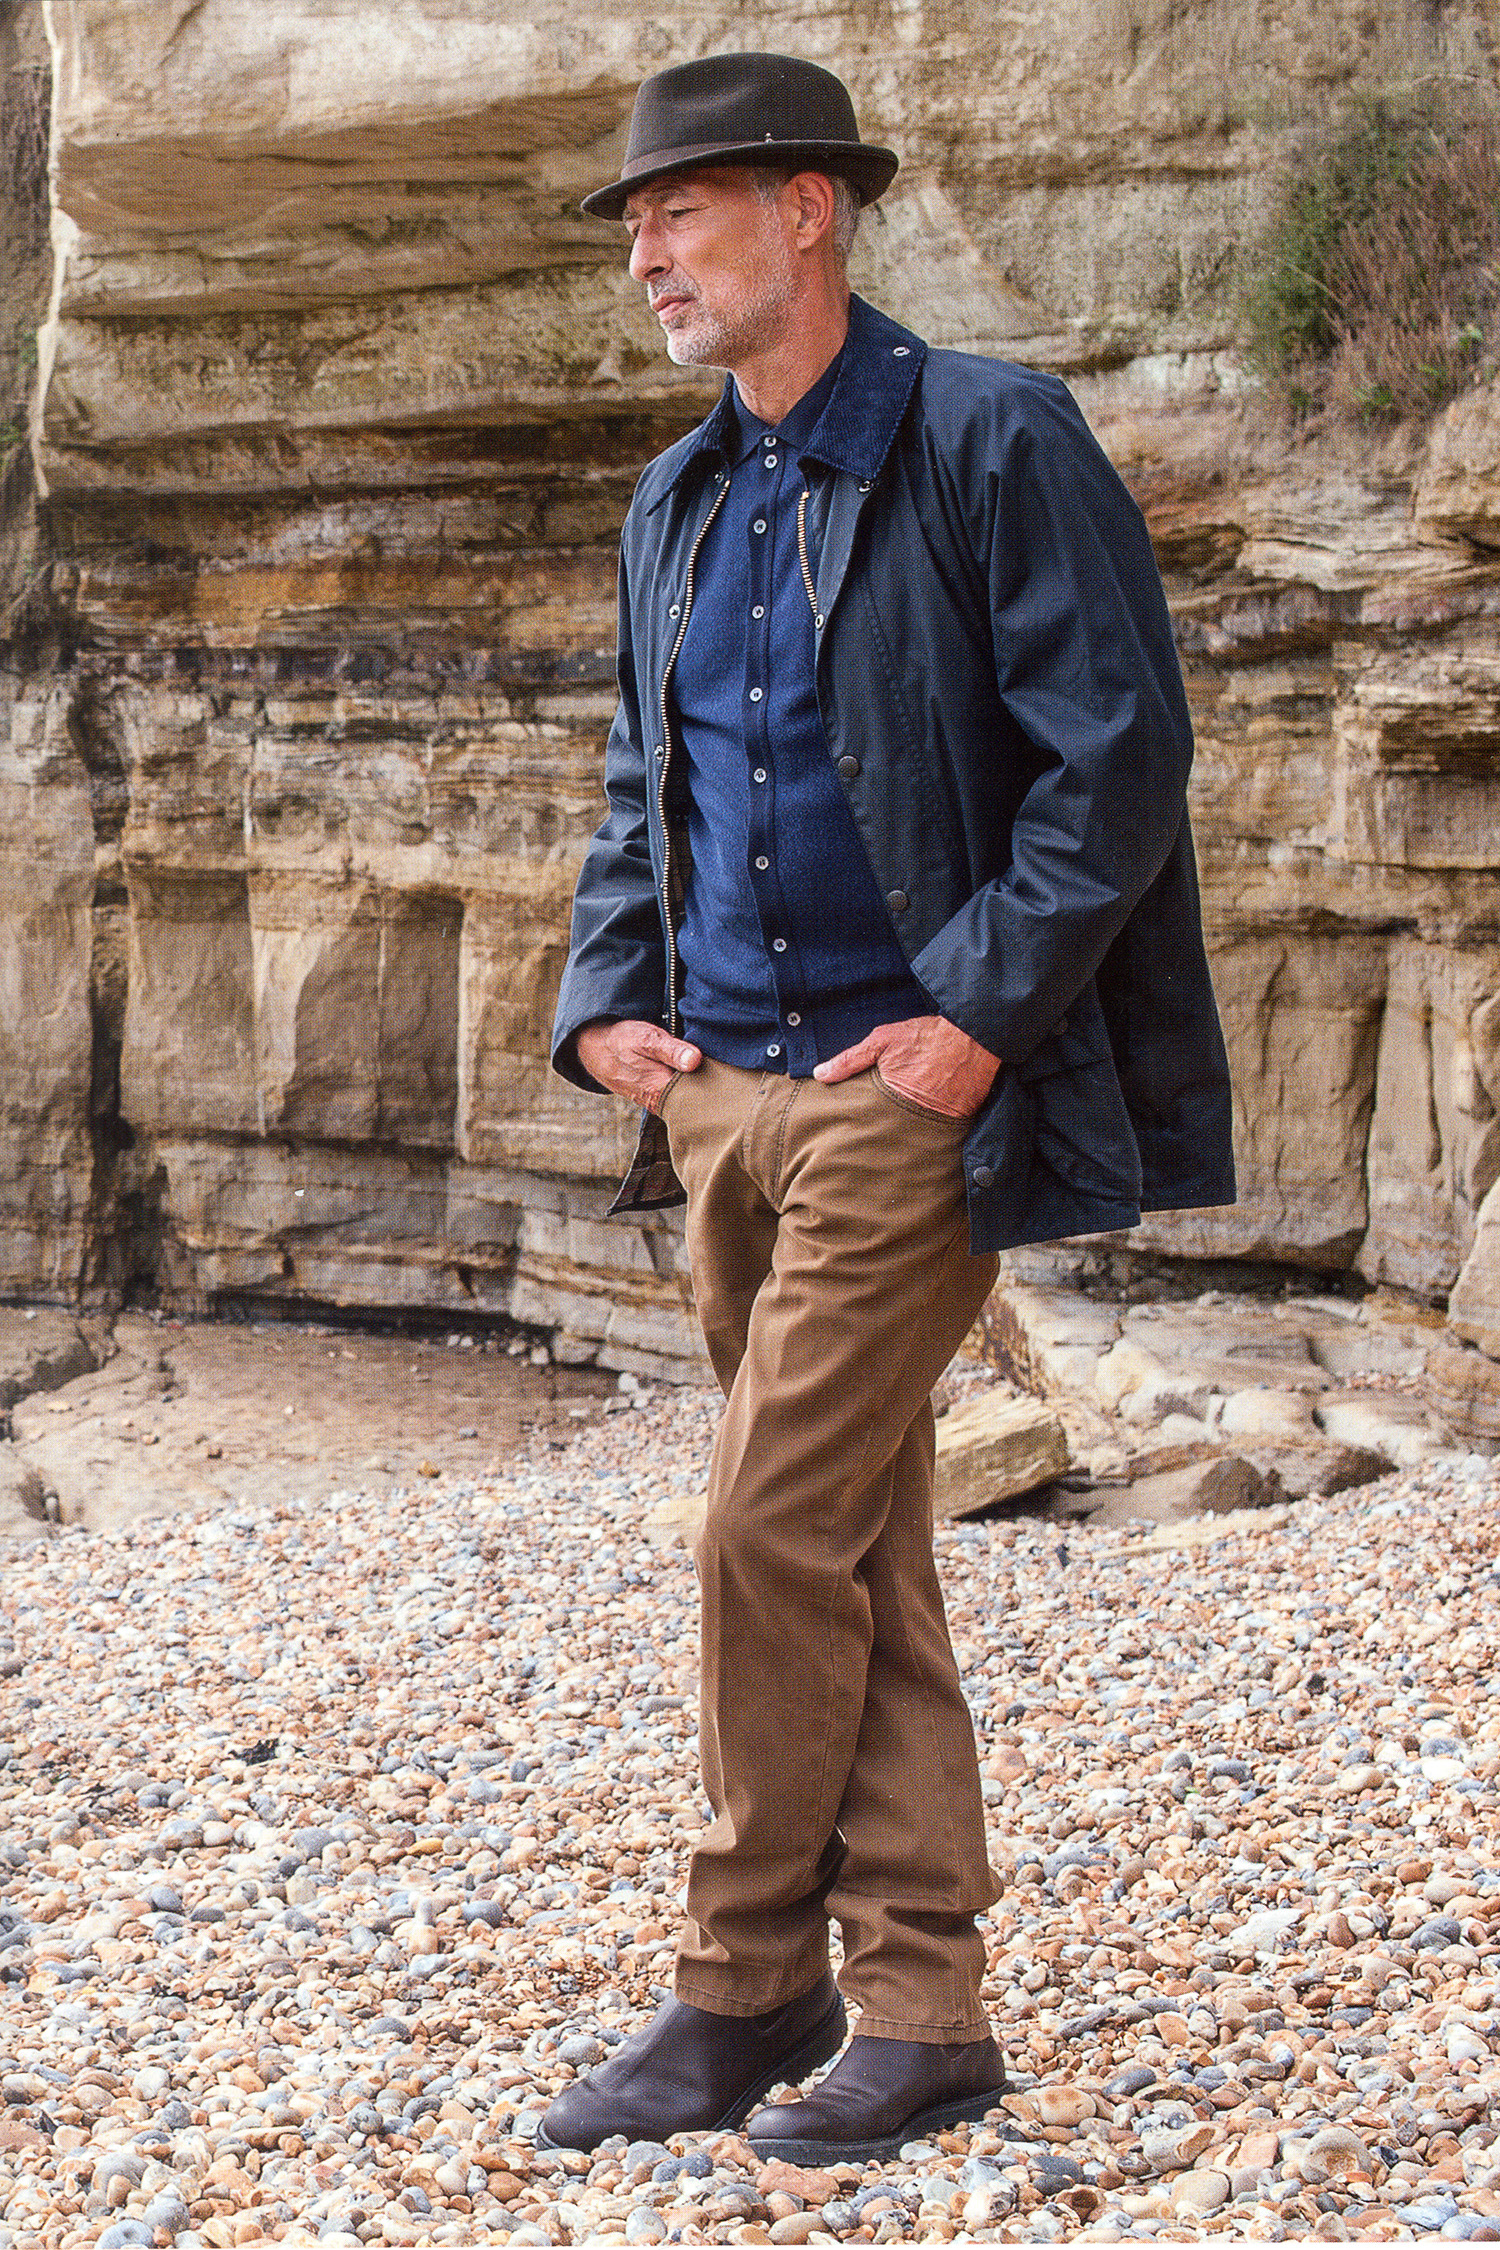 Barbour 'Beaufort' wax jacket £239 and RM Williams 'Stockyard' boots £180